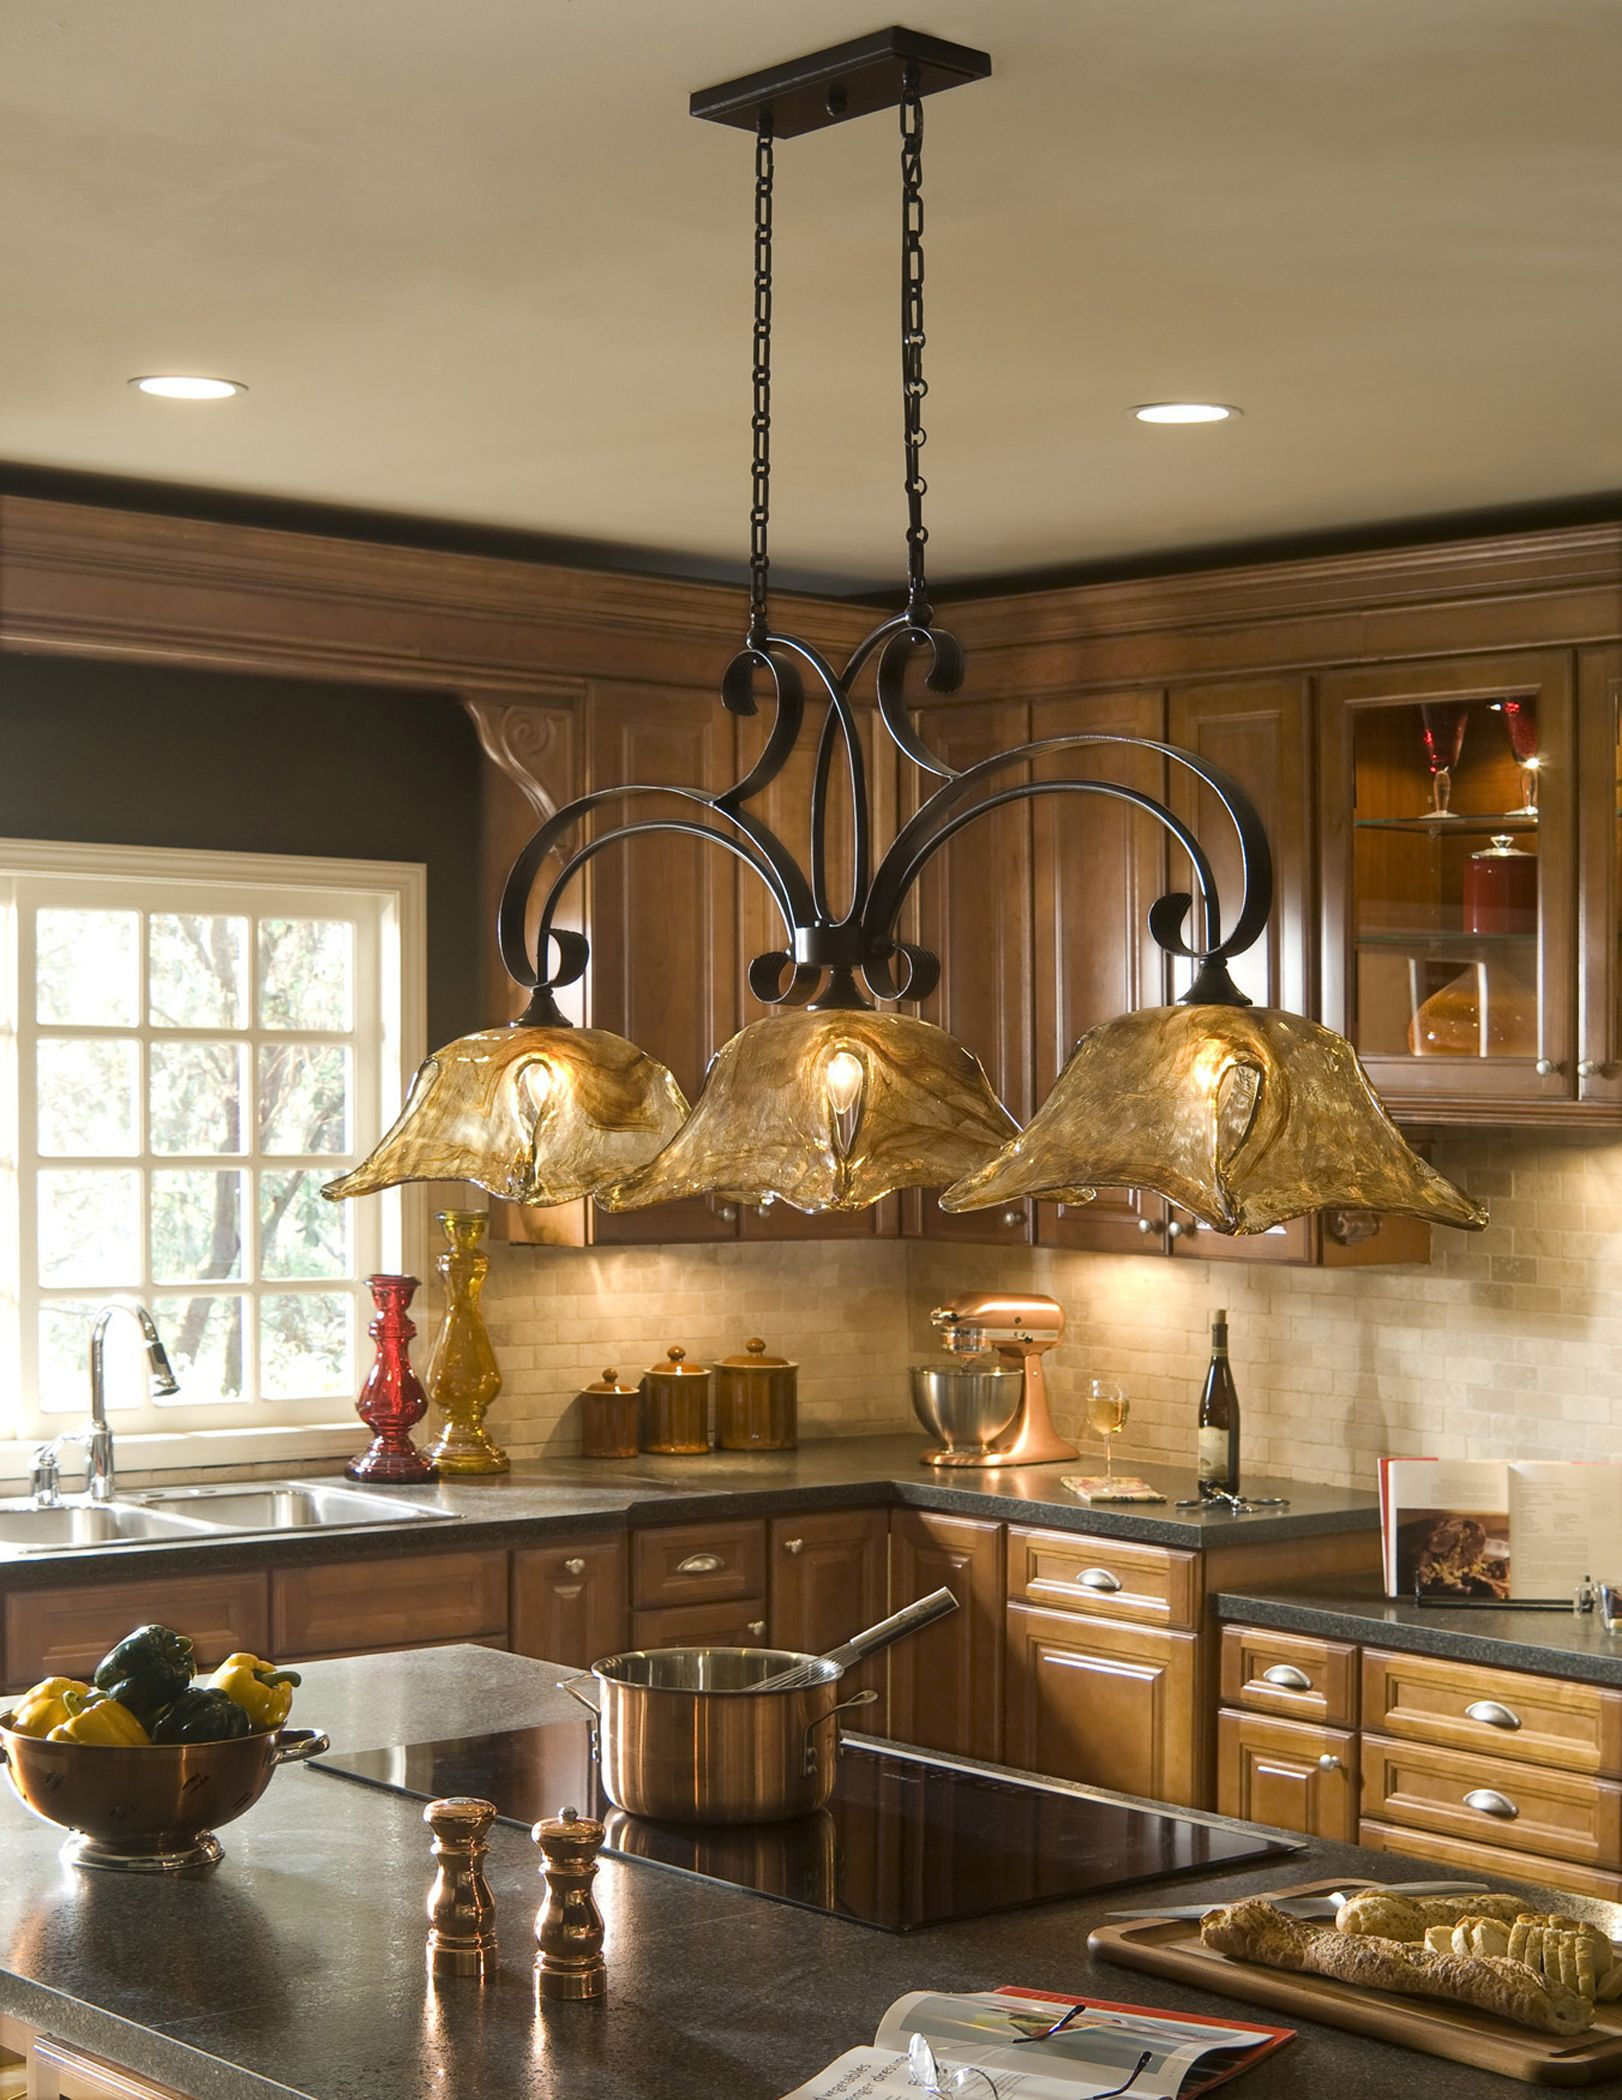 ^ 1000+ images about island lighting on Pinterest Bronze, Pendants ...